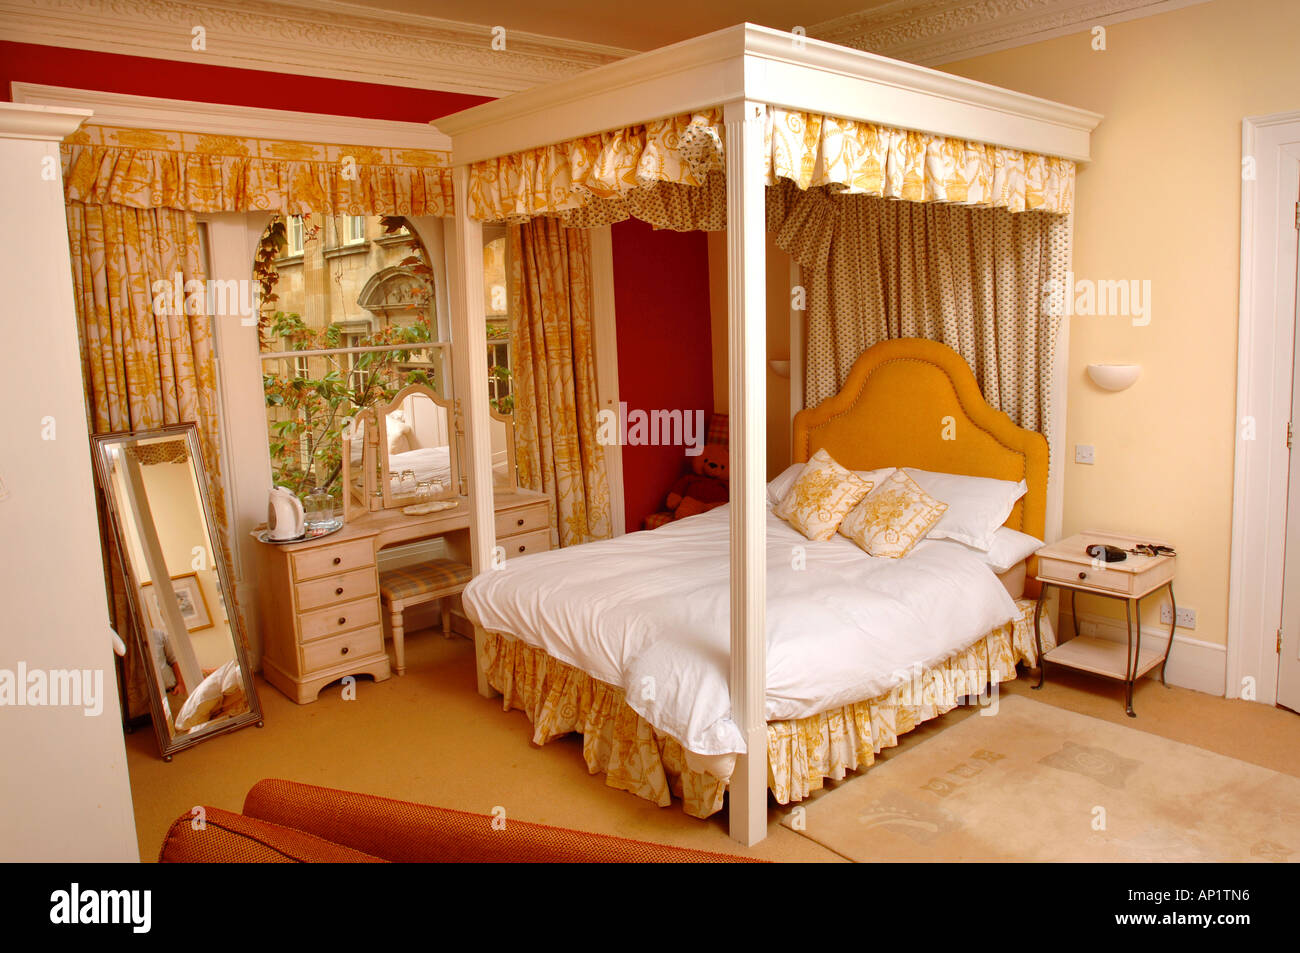 A LUXURY BED AND BREAKFAST BEDROOM IN A TOWN HOUSE IN THE COTSWOLDS GLOUCESTERSHIRE UK - Stock Image